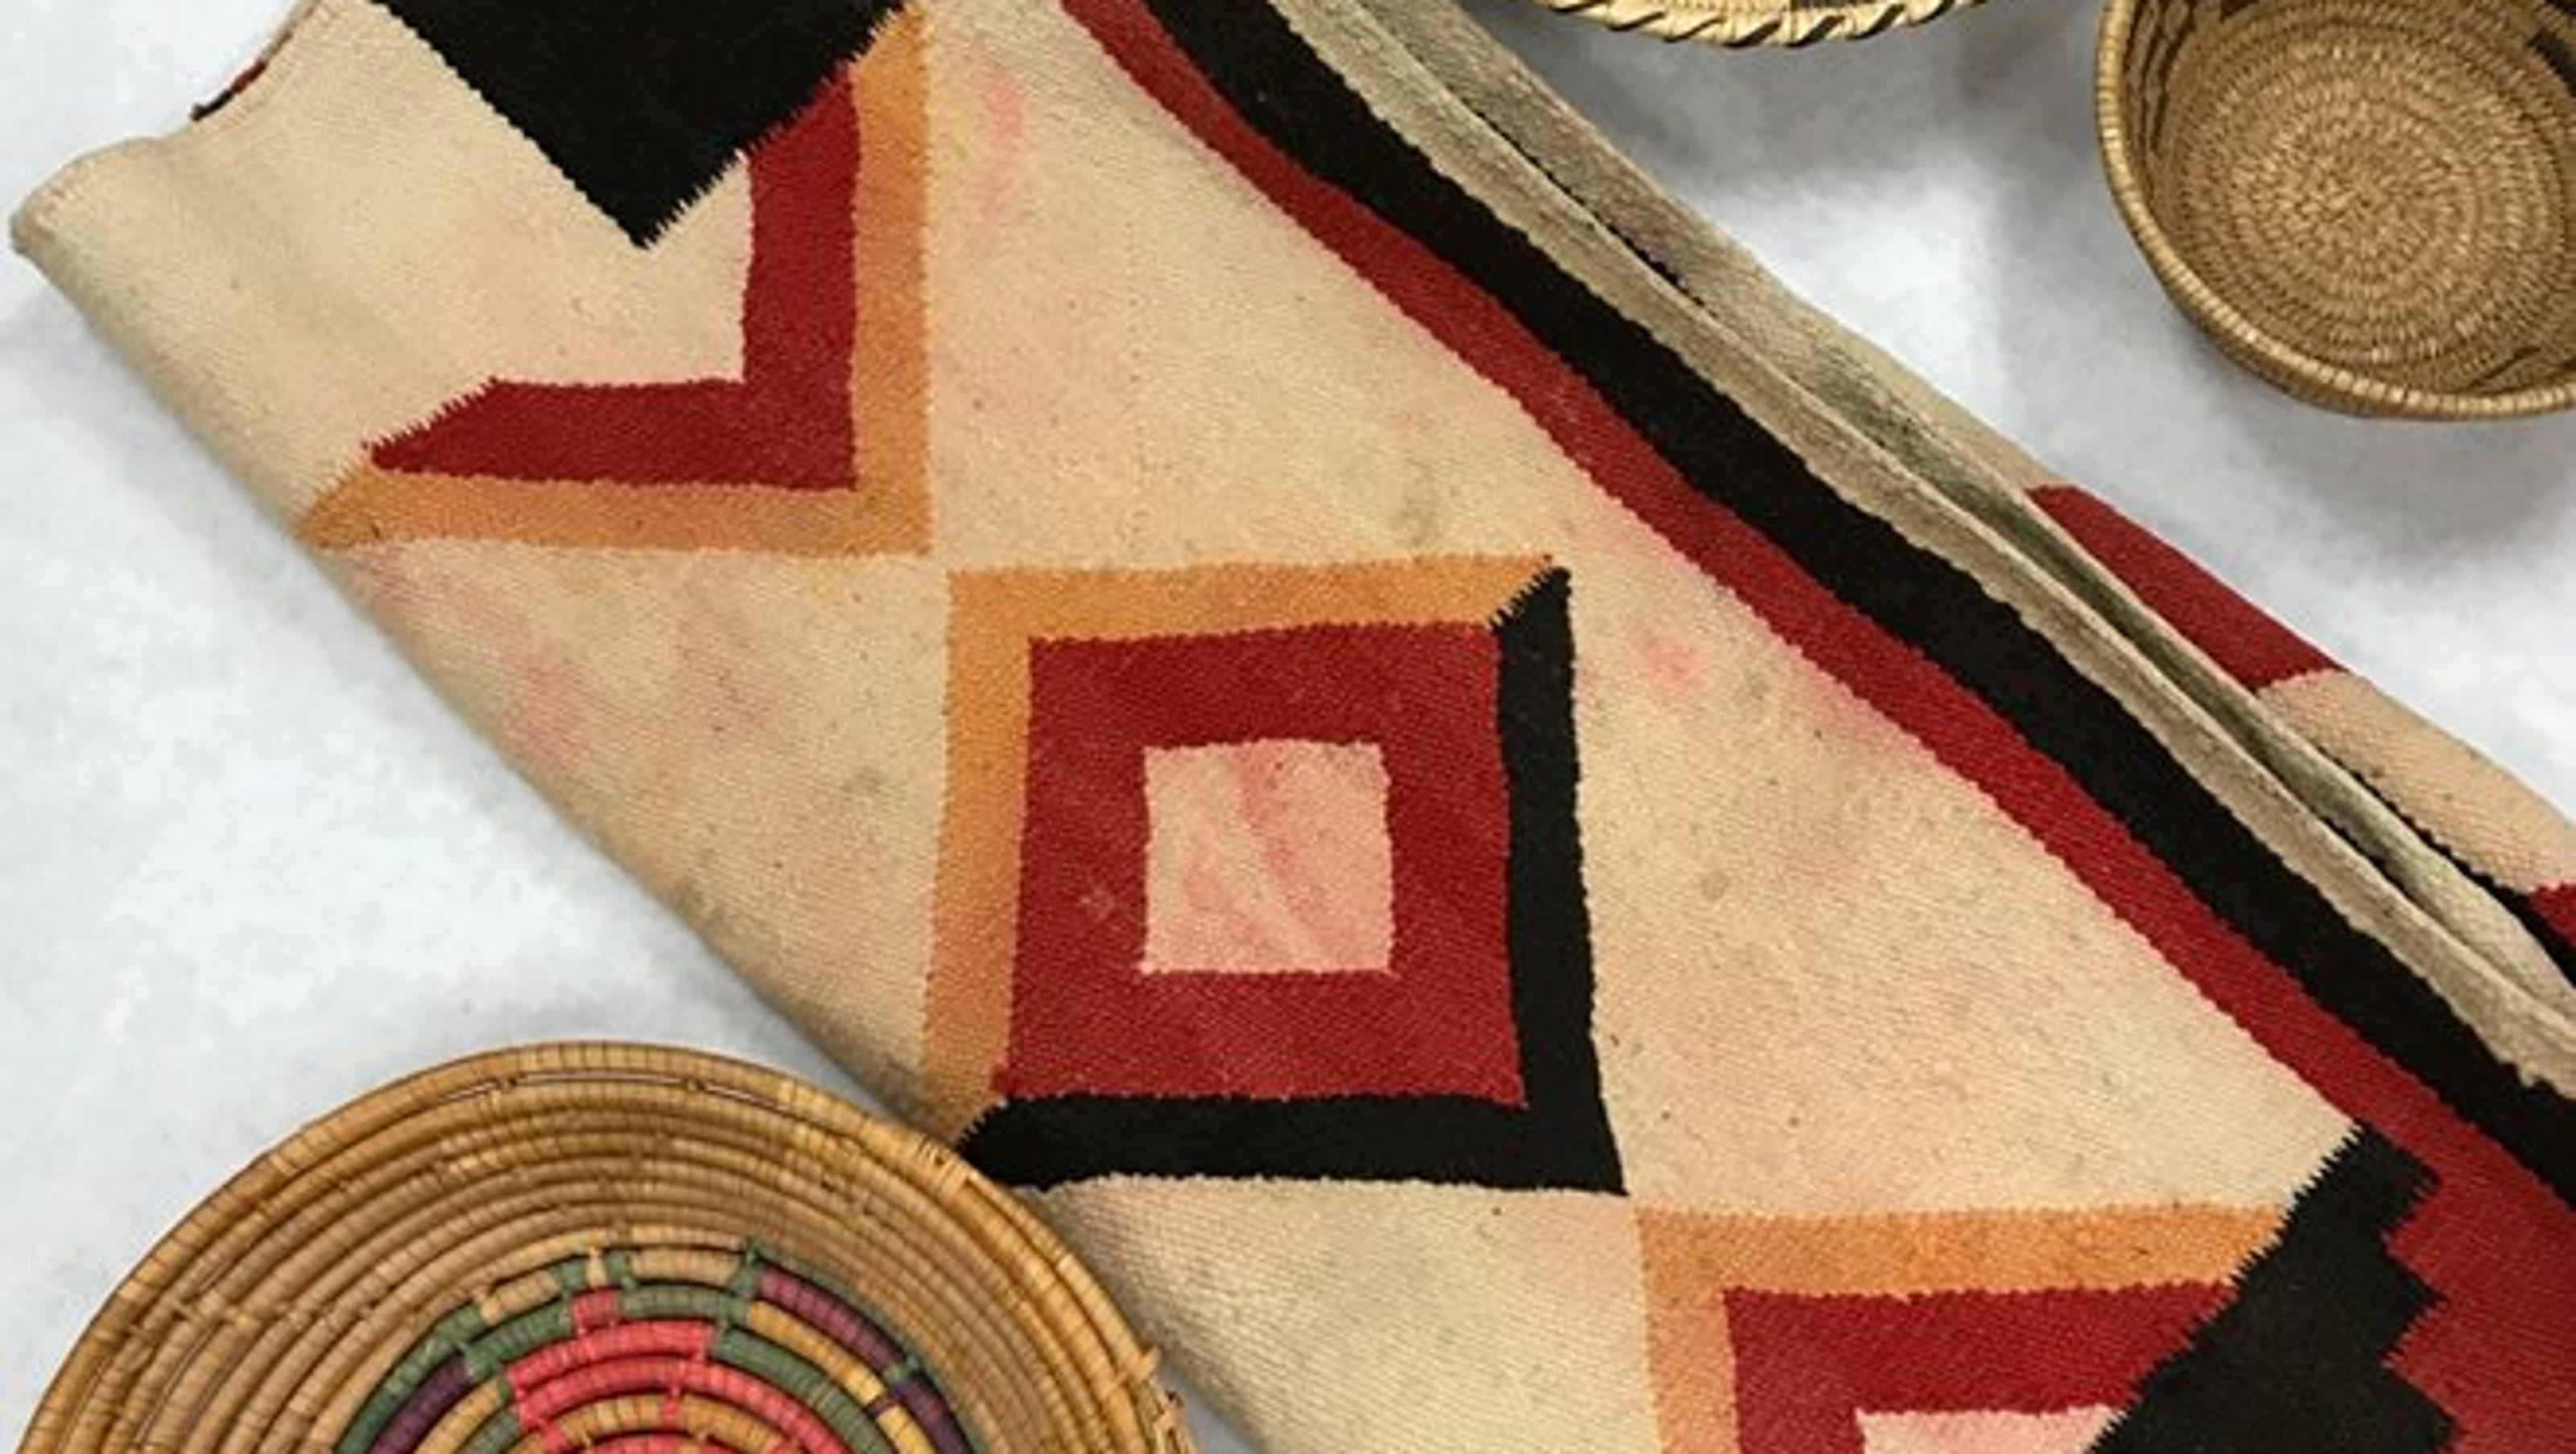 Native American Artifacts Recovered Police Say